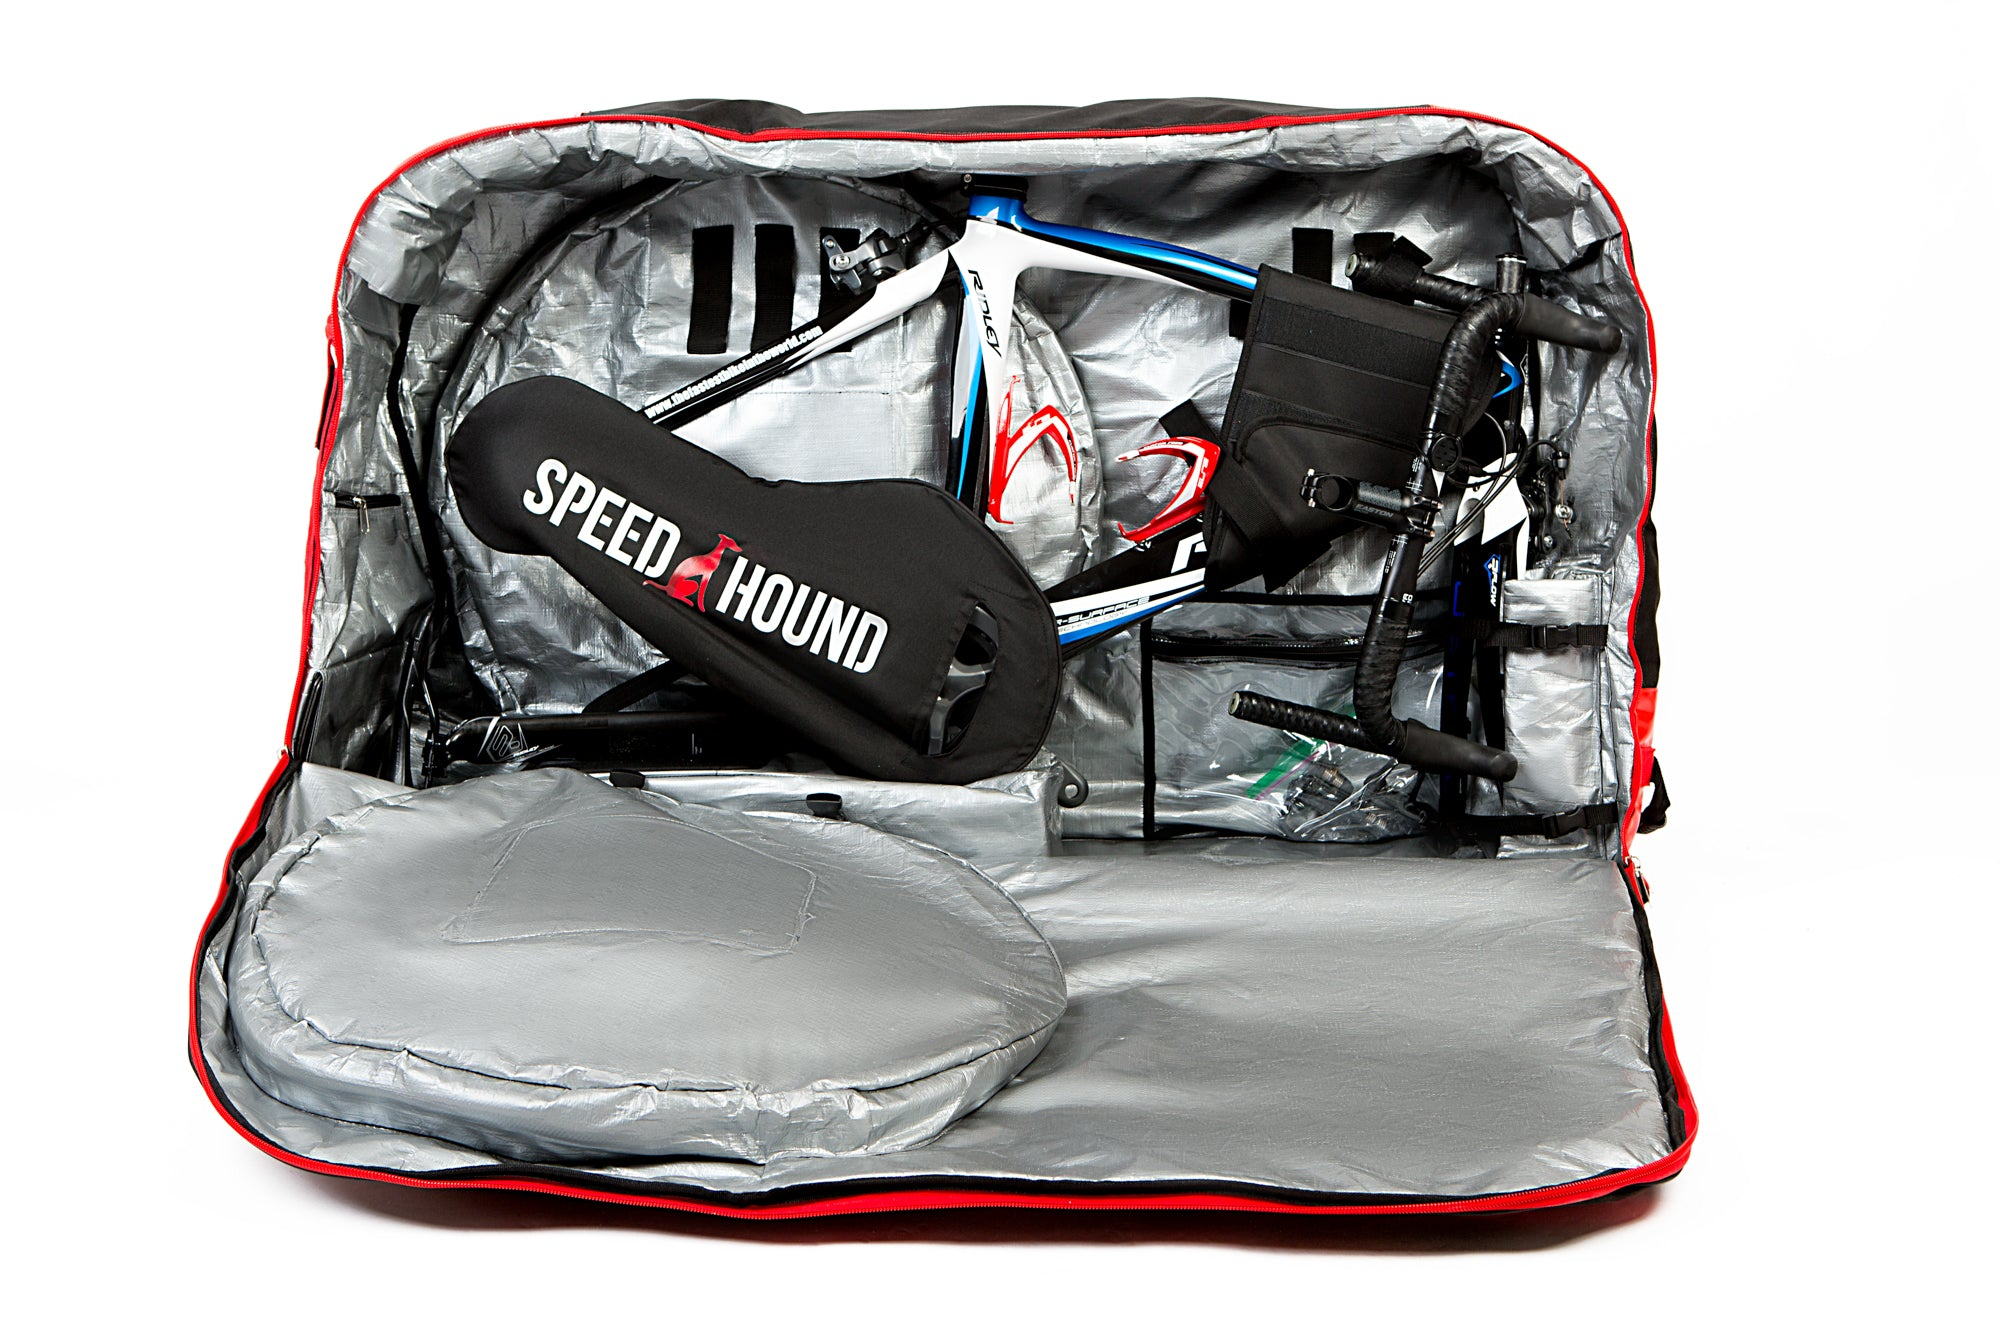 Speed Hound FREEDOM Bike Travel Bag (Jet Black/Red) - Used, Good Condition***